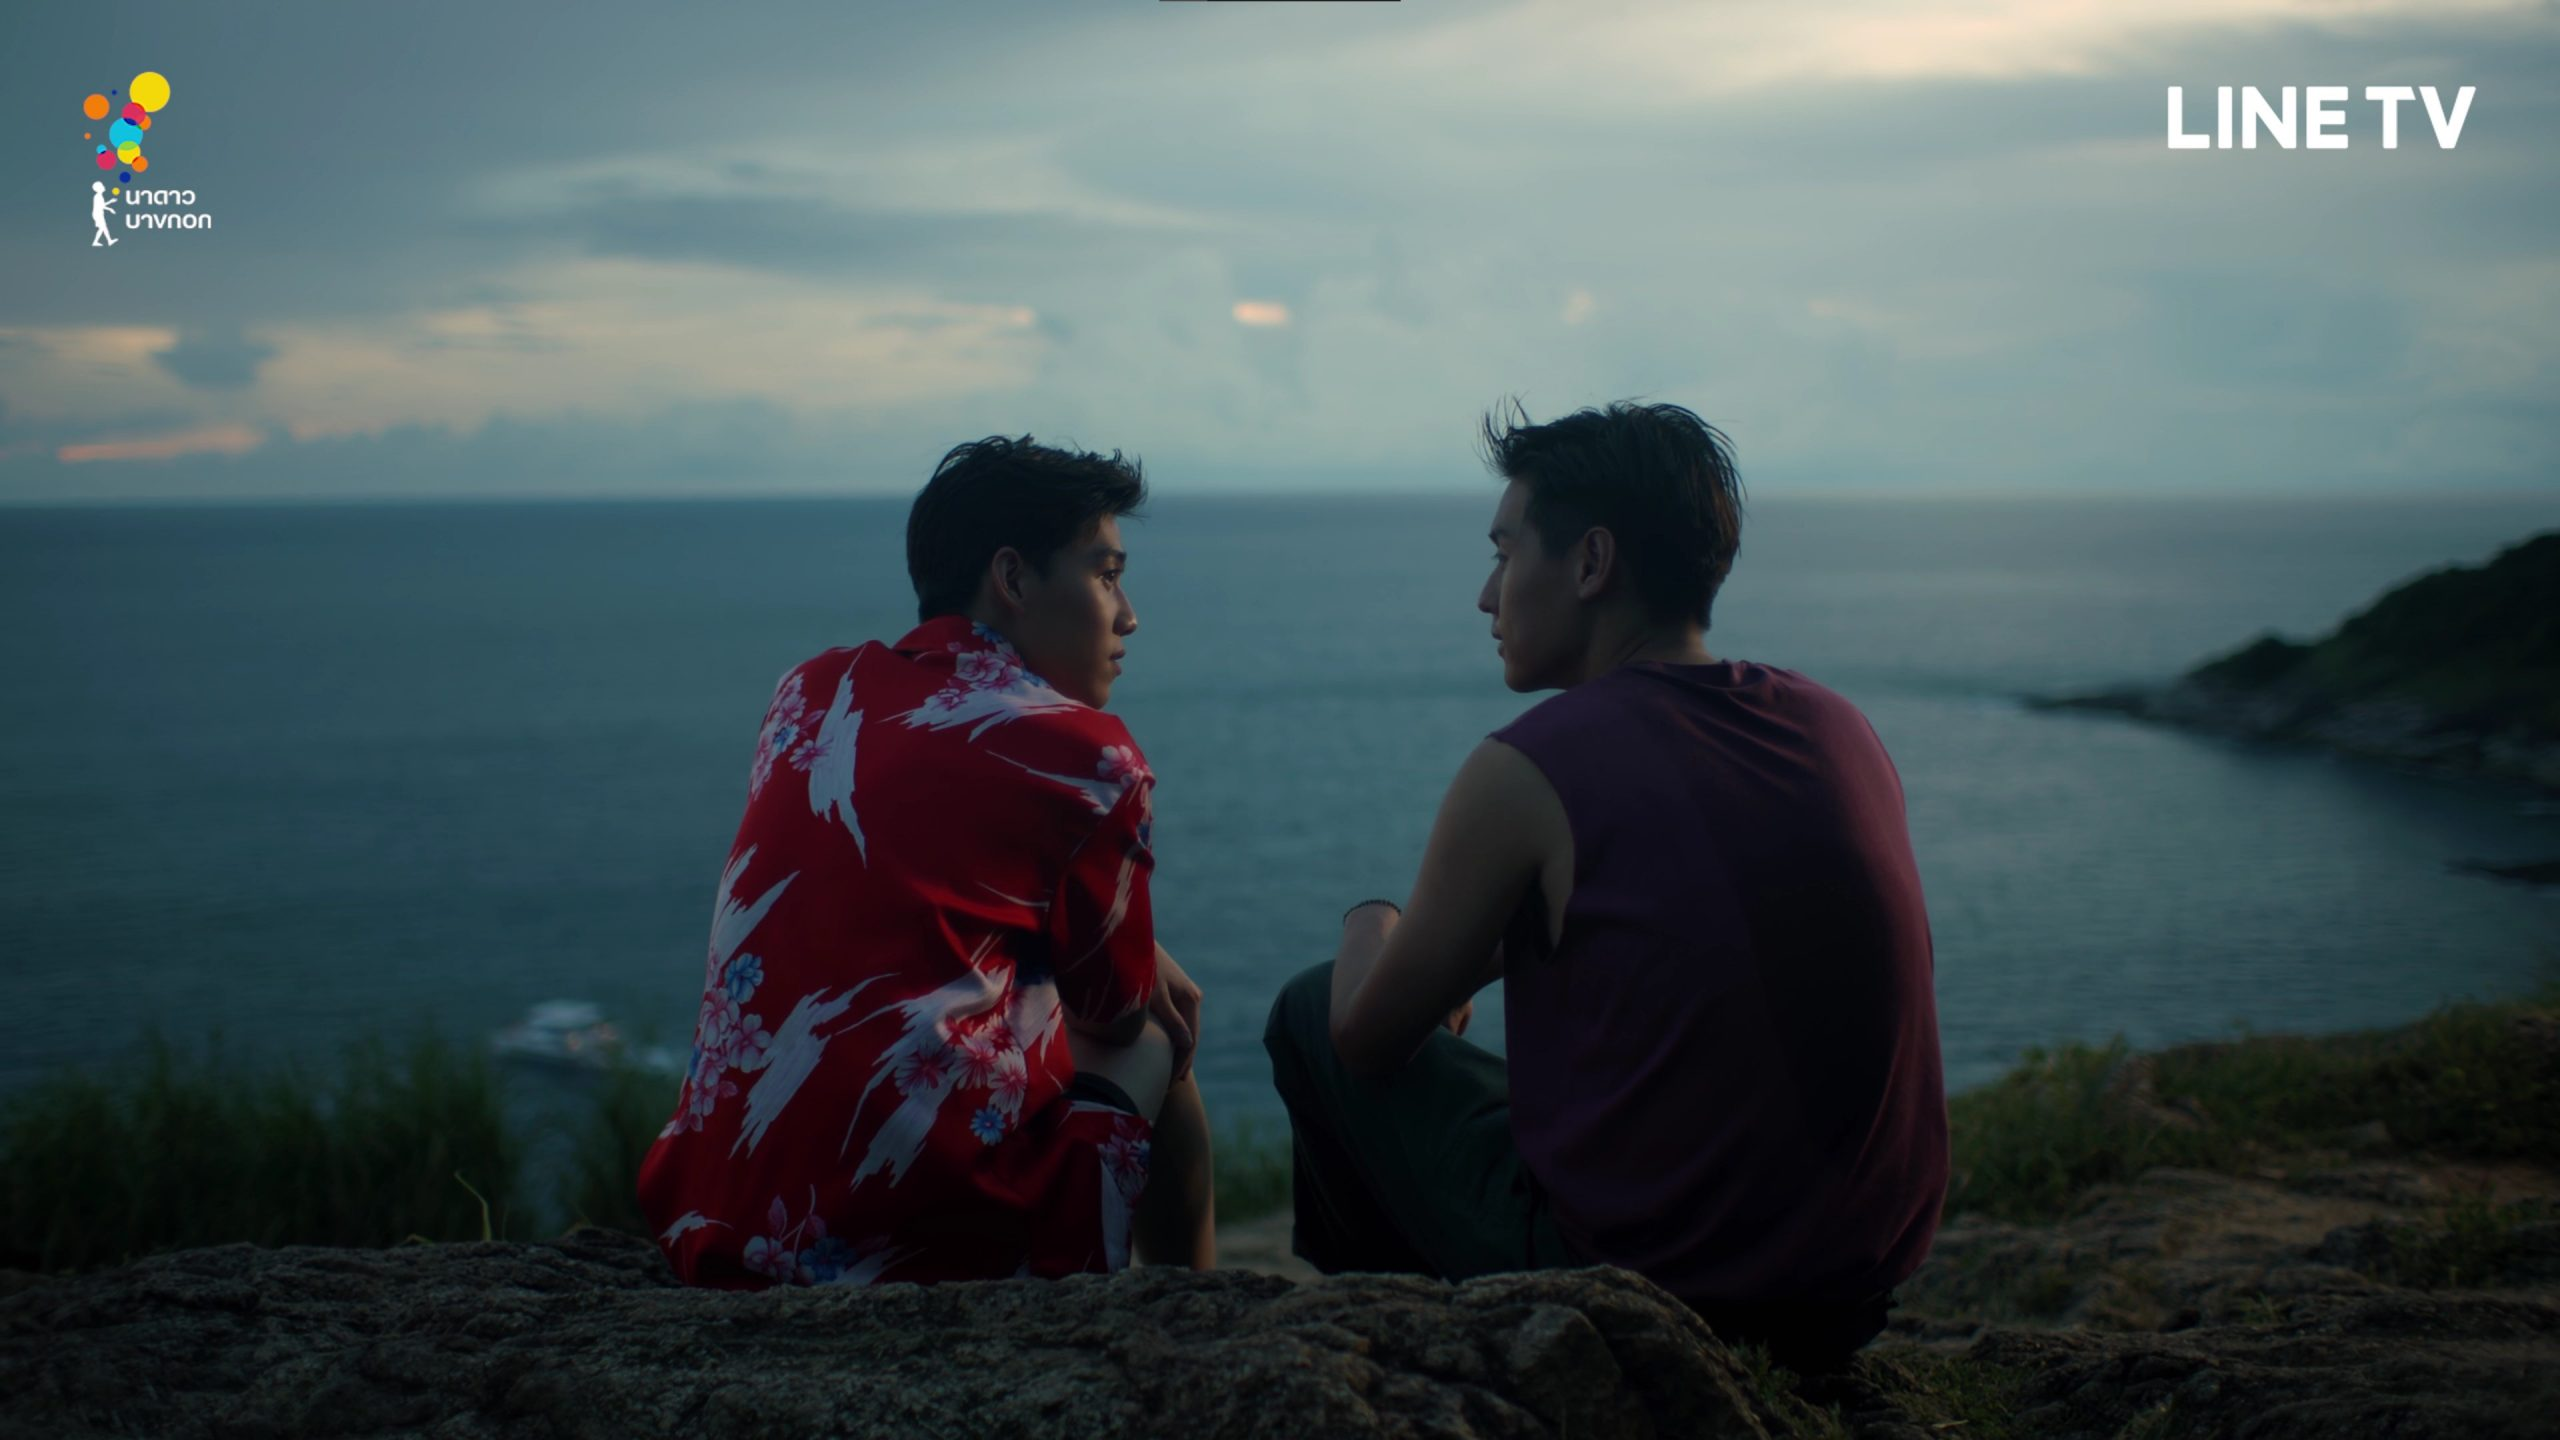 """""""I Told Sunset About You"""": A Realistic and Emotive Portrait of Adolescent Love"""